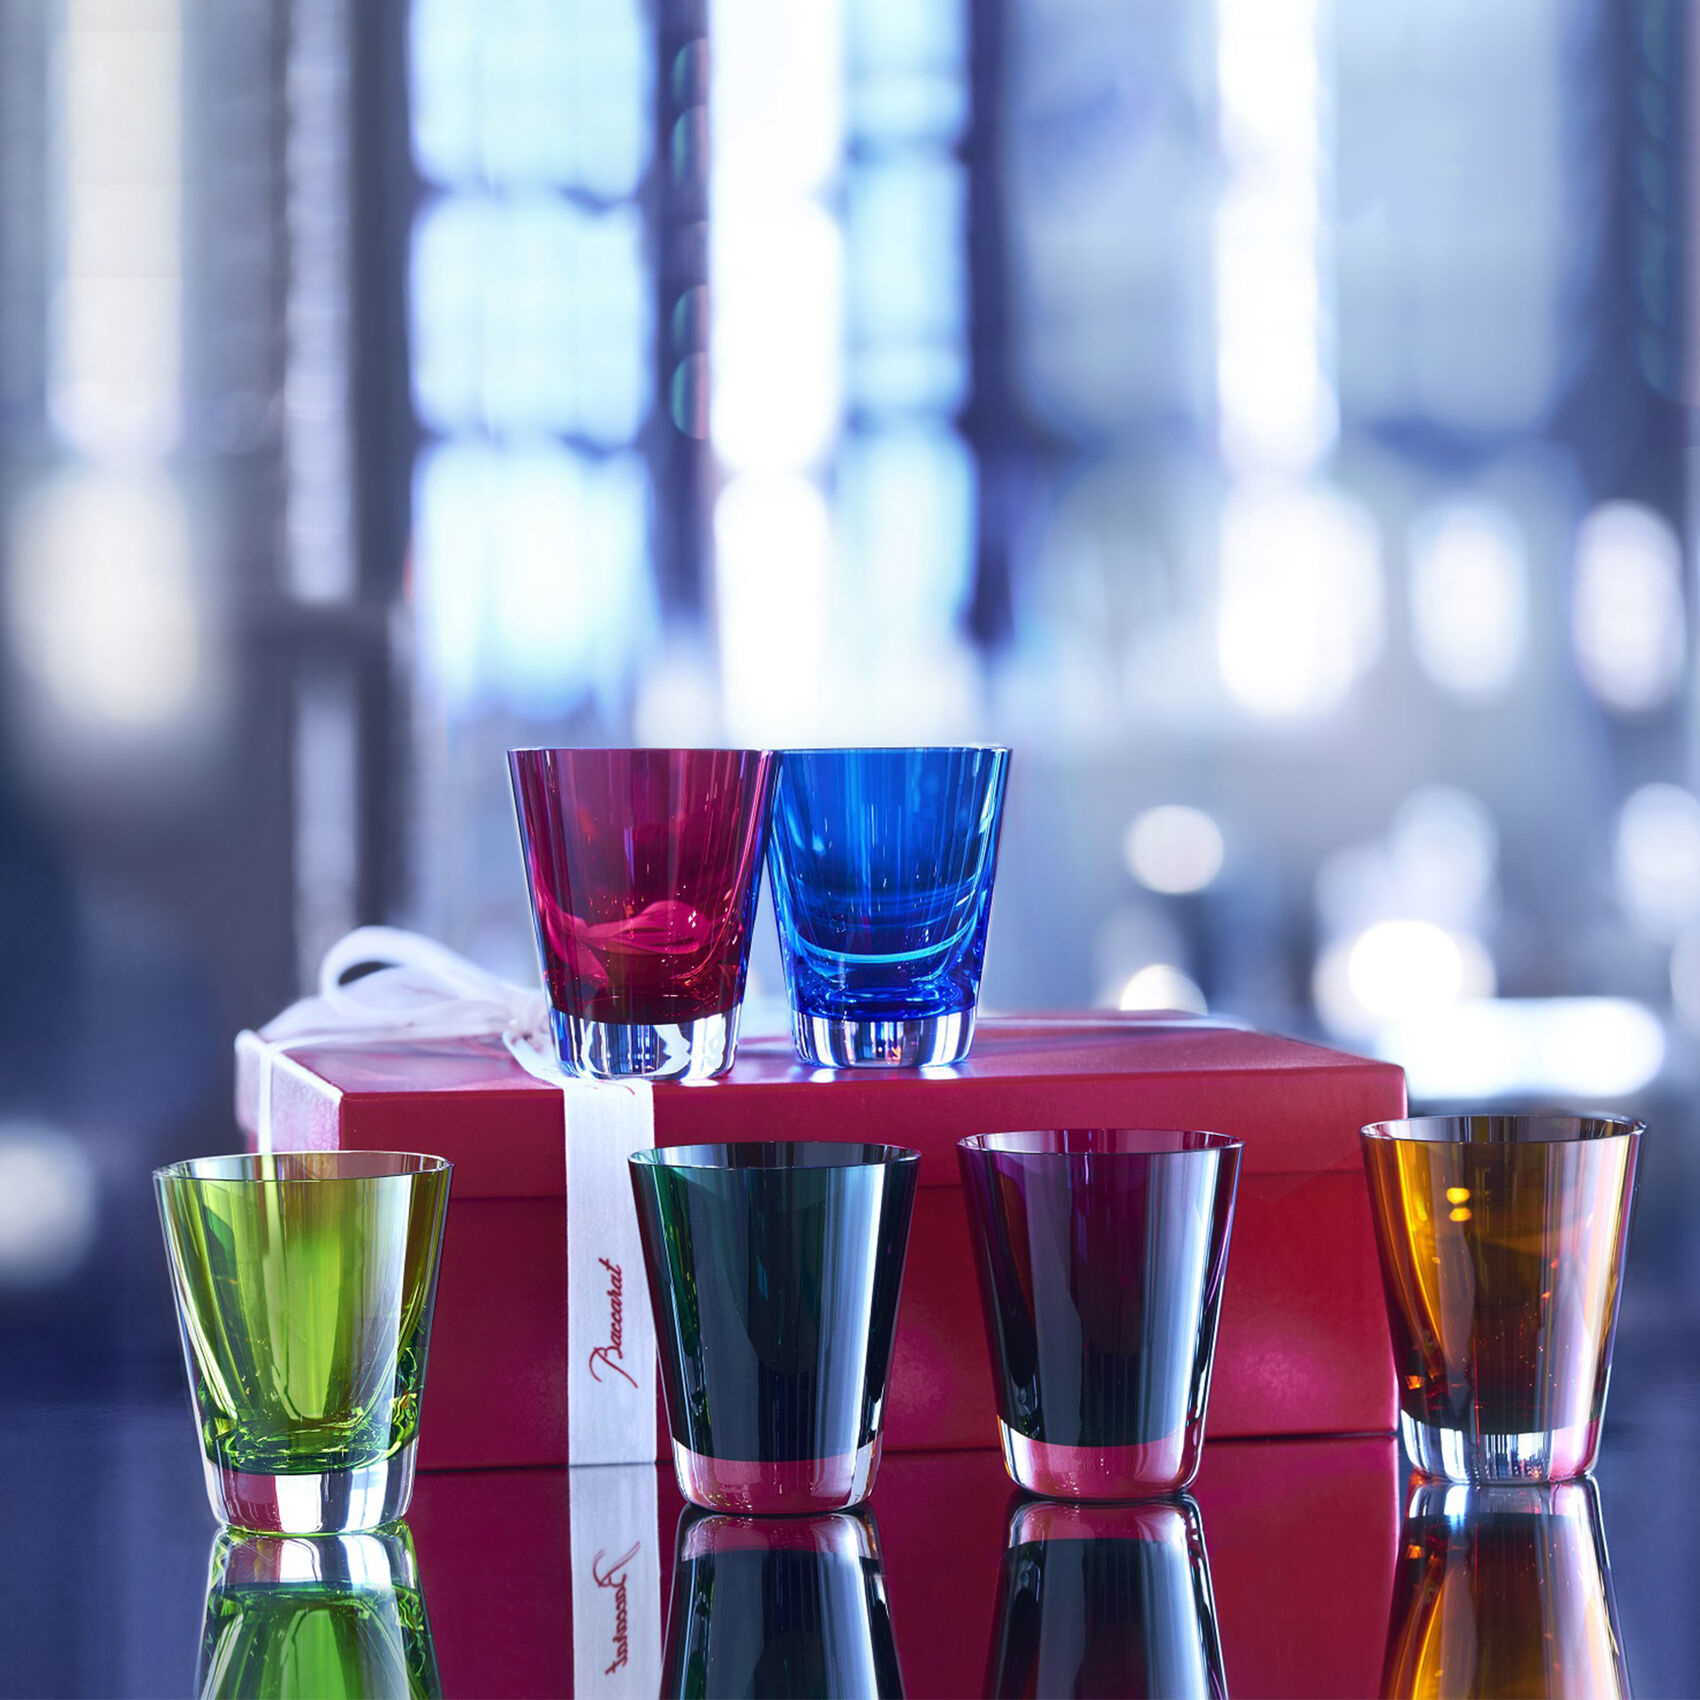 Baccarat Mosaique Tumblers Boxed S/6